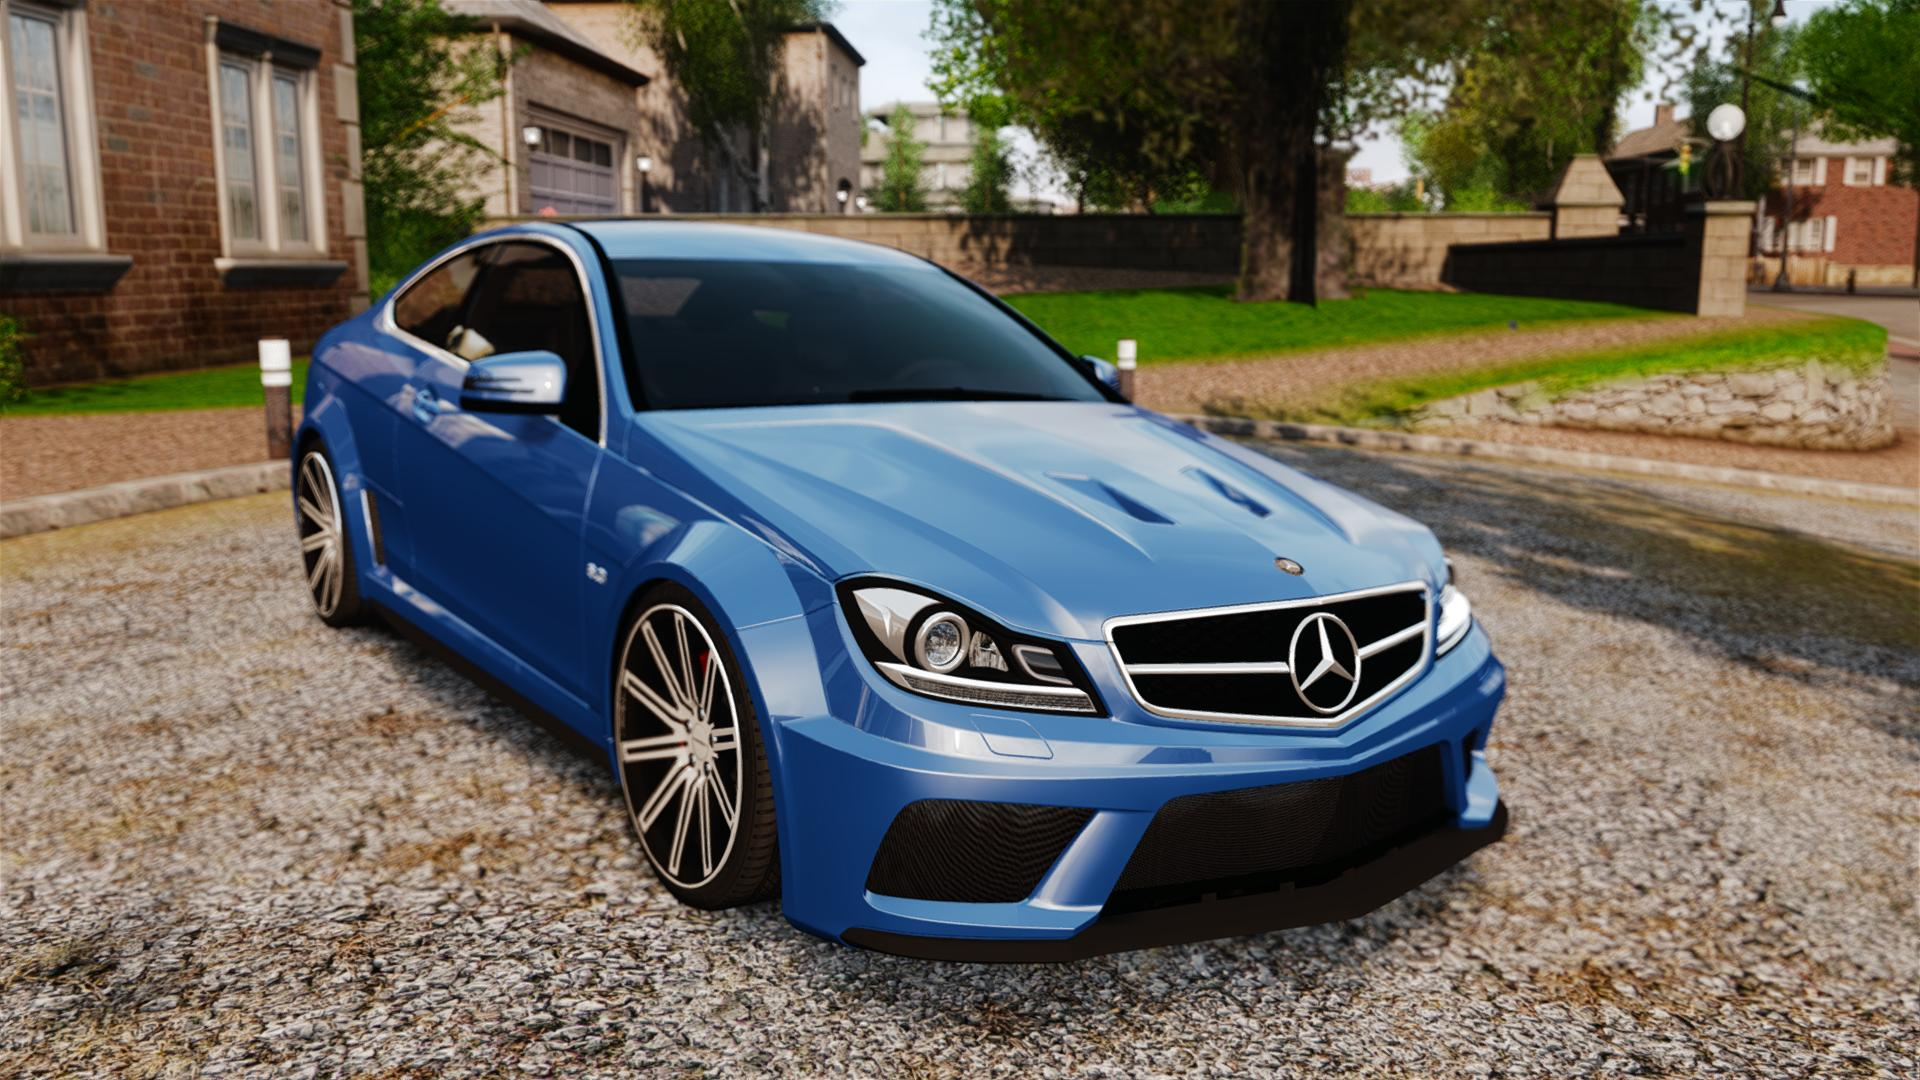 Mercedes-Benz C 63 AMG - GTA4